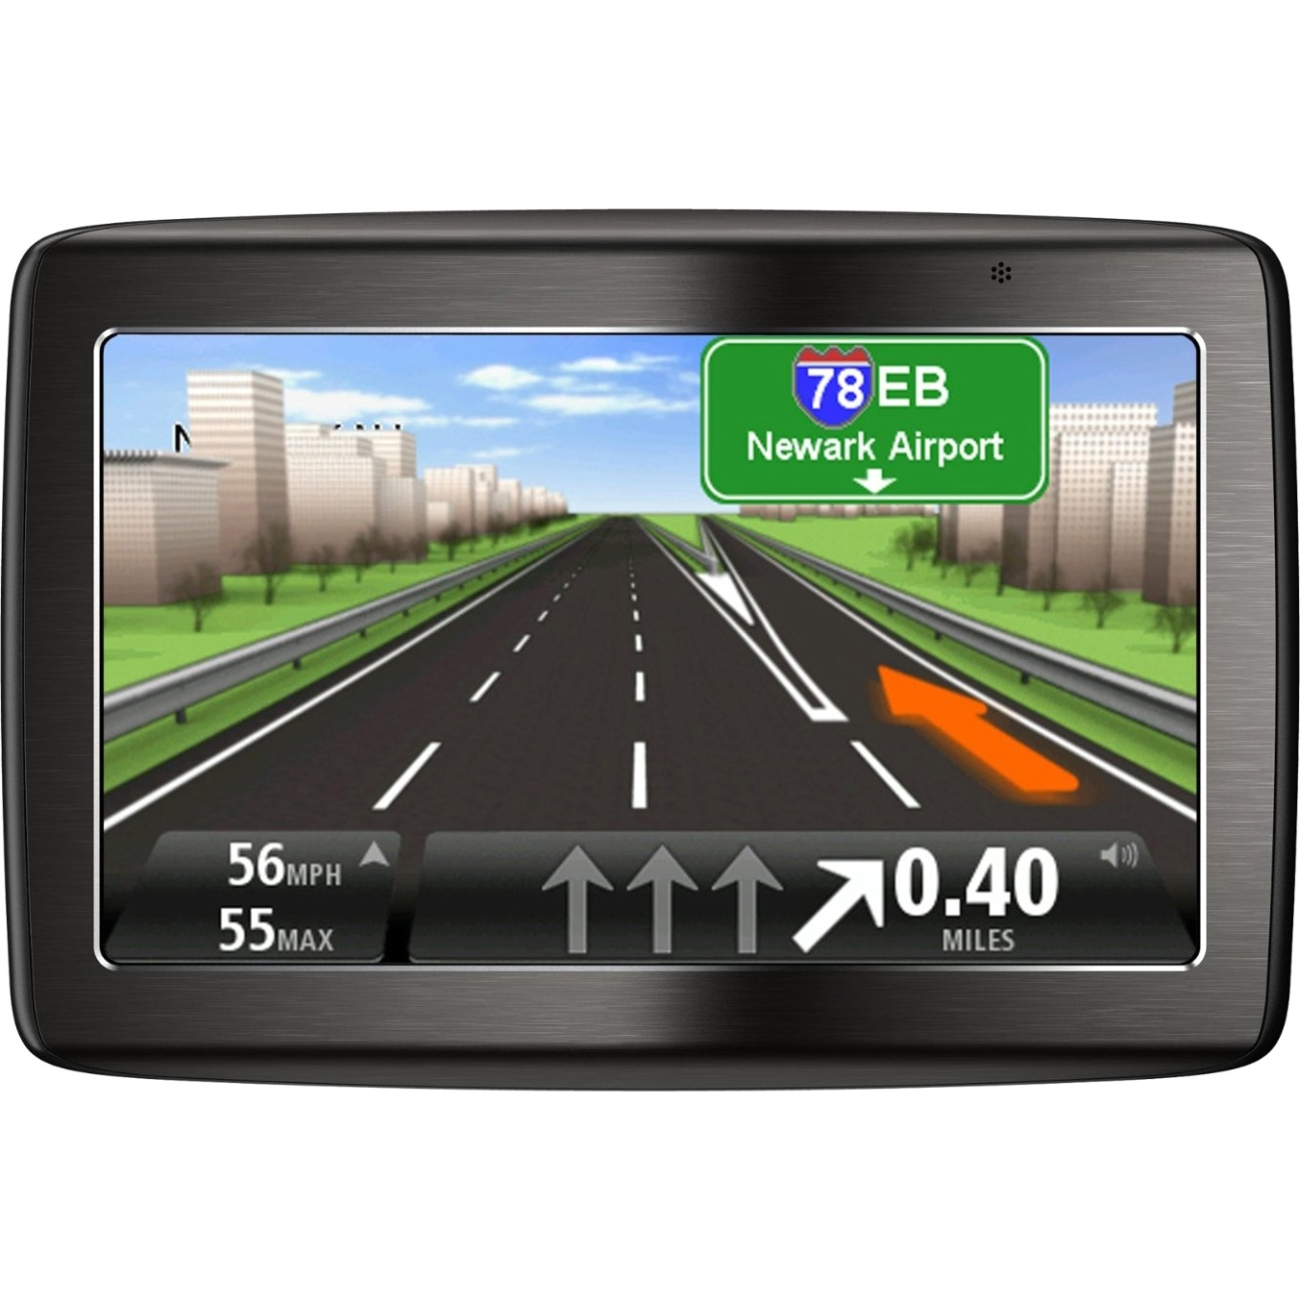 "Tomtom Via 1415m Automobile Portable Gps Navigator - Portable, Mountable - 4.3"" - Touchscreen - Turn-by-turn Navigation, Lane Assist - Yes - Lifetime Map Updates - Car (1en4-052-10)"